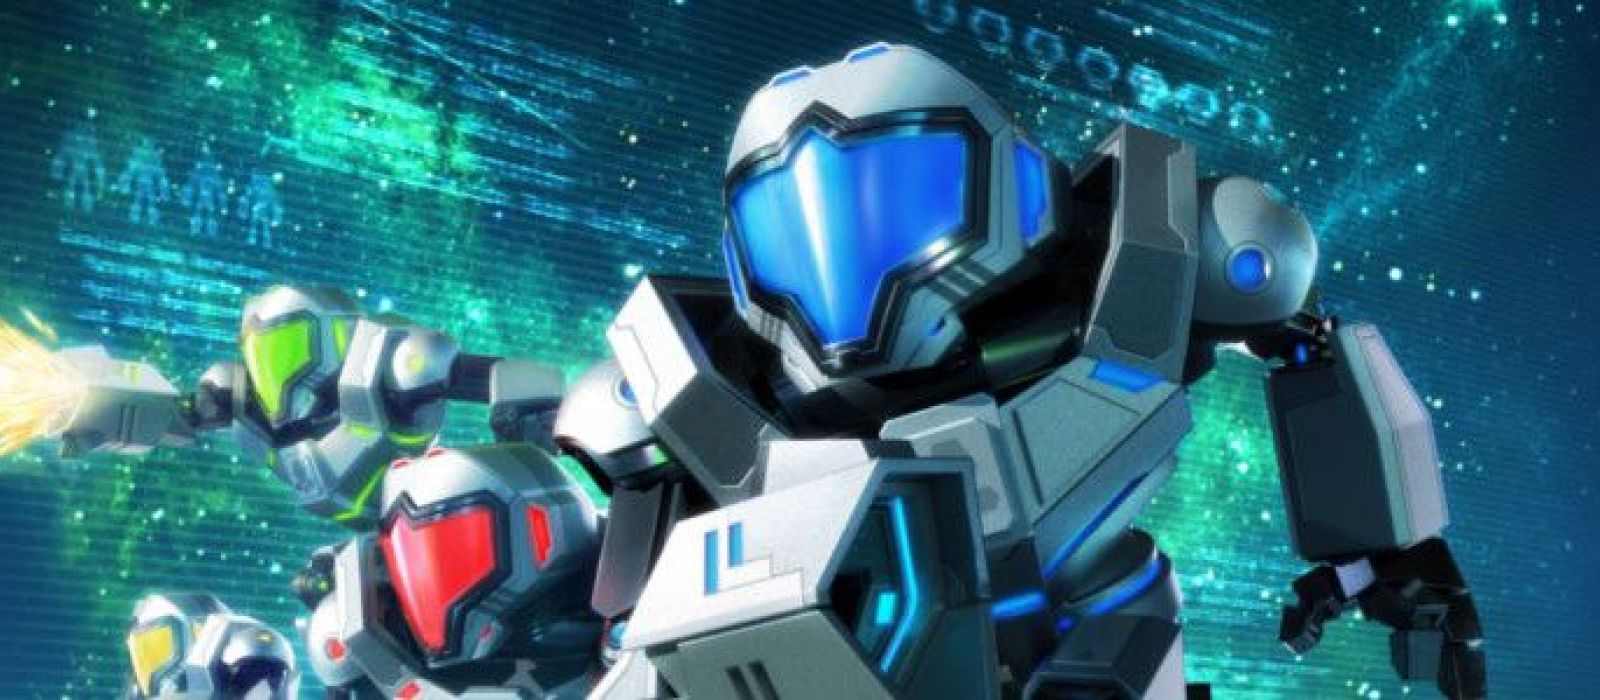 Metroid Prime: Federation Force для 3DS выйдет в сентябре